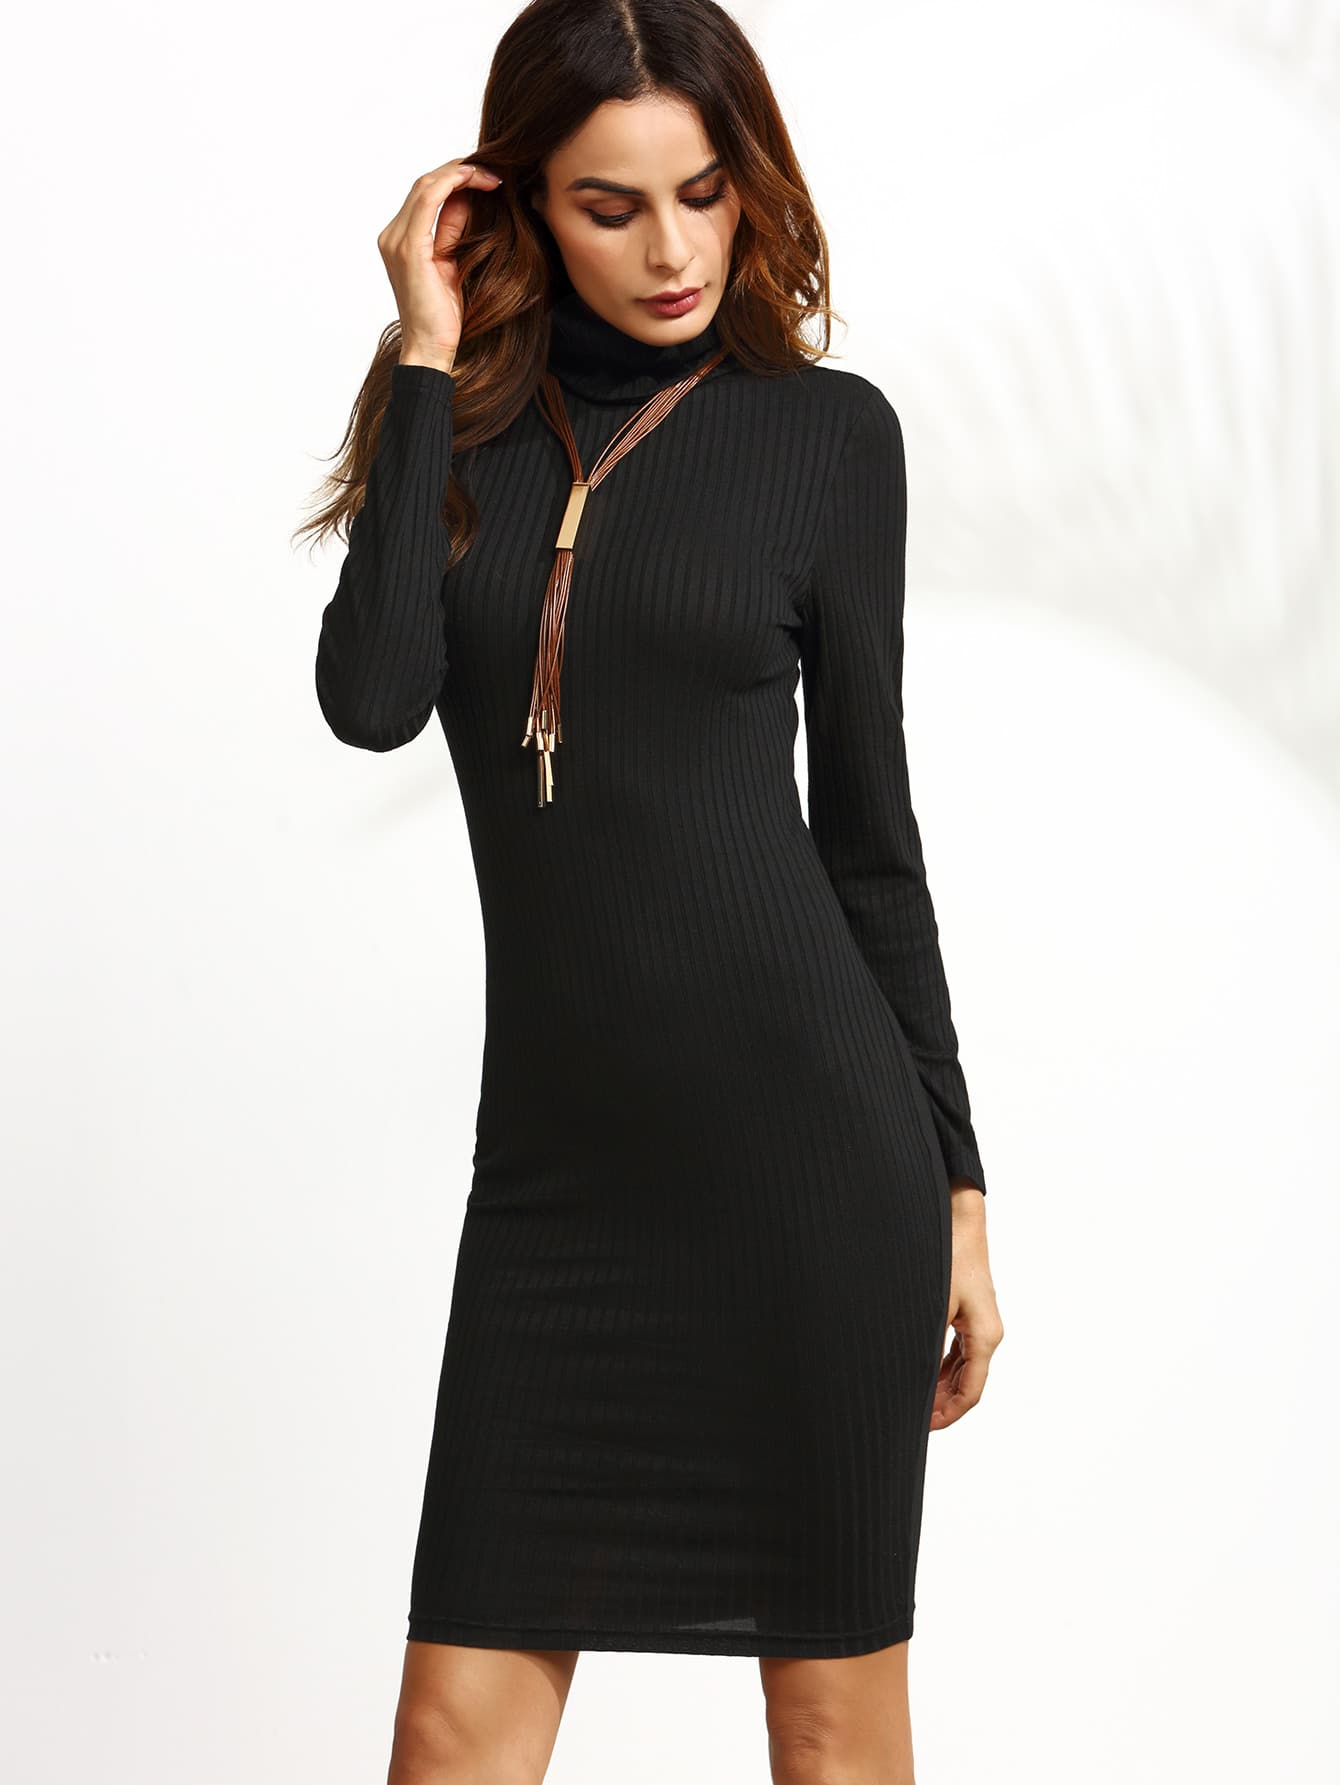 Black Turtleneck Long Sleeve Ribbed Pencil Dress dress160818701